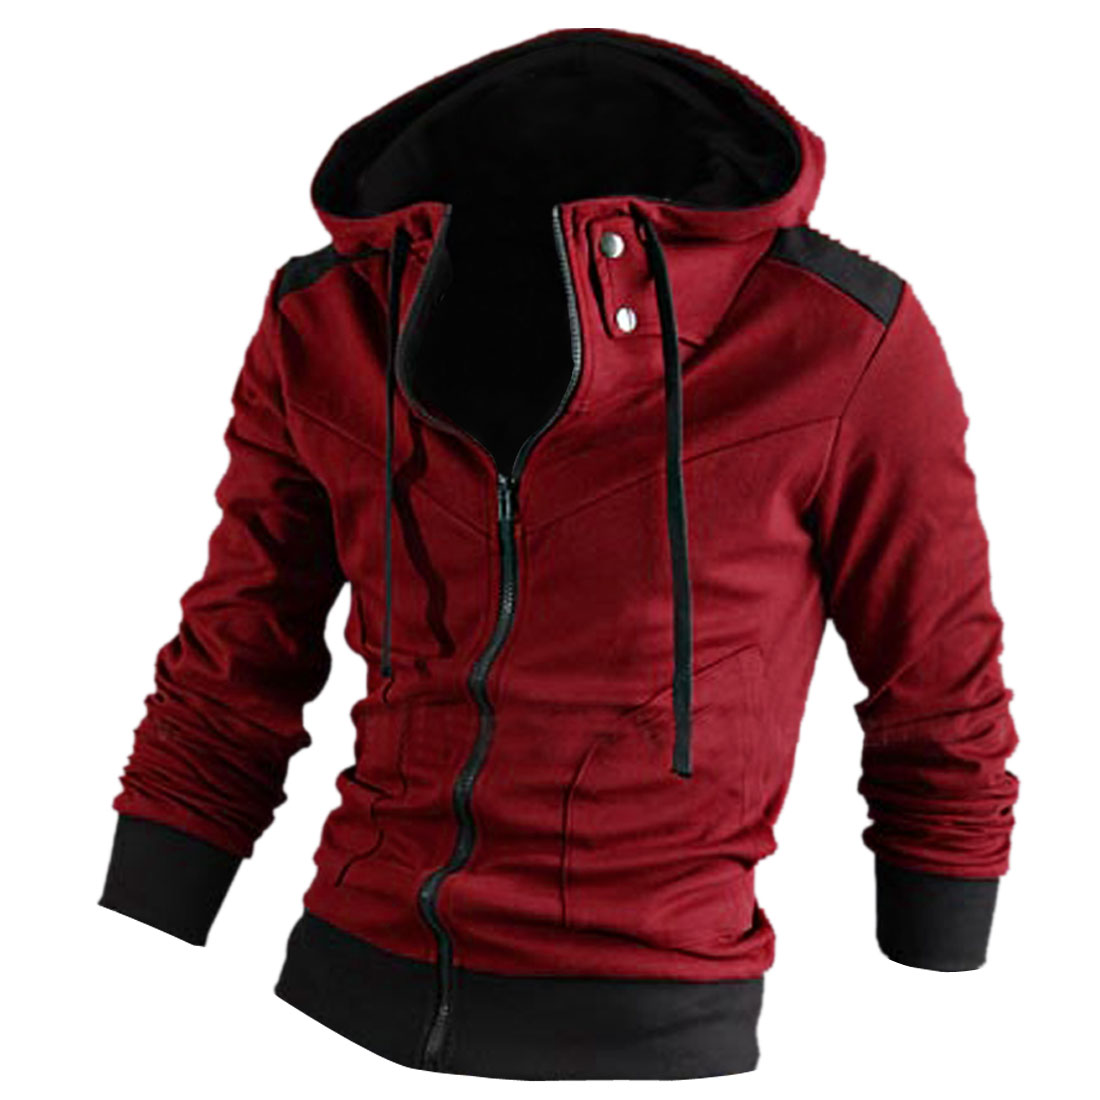 Men Long Sleeve Skinny Fit Stand Collar Casual Sexy Top Hoodies M Burgundy